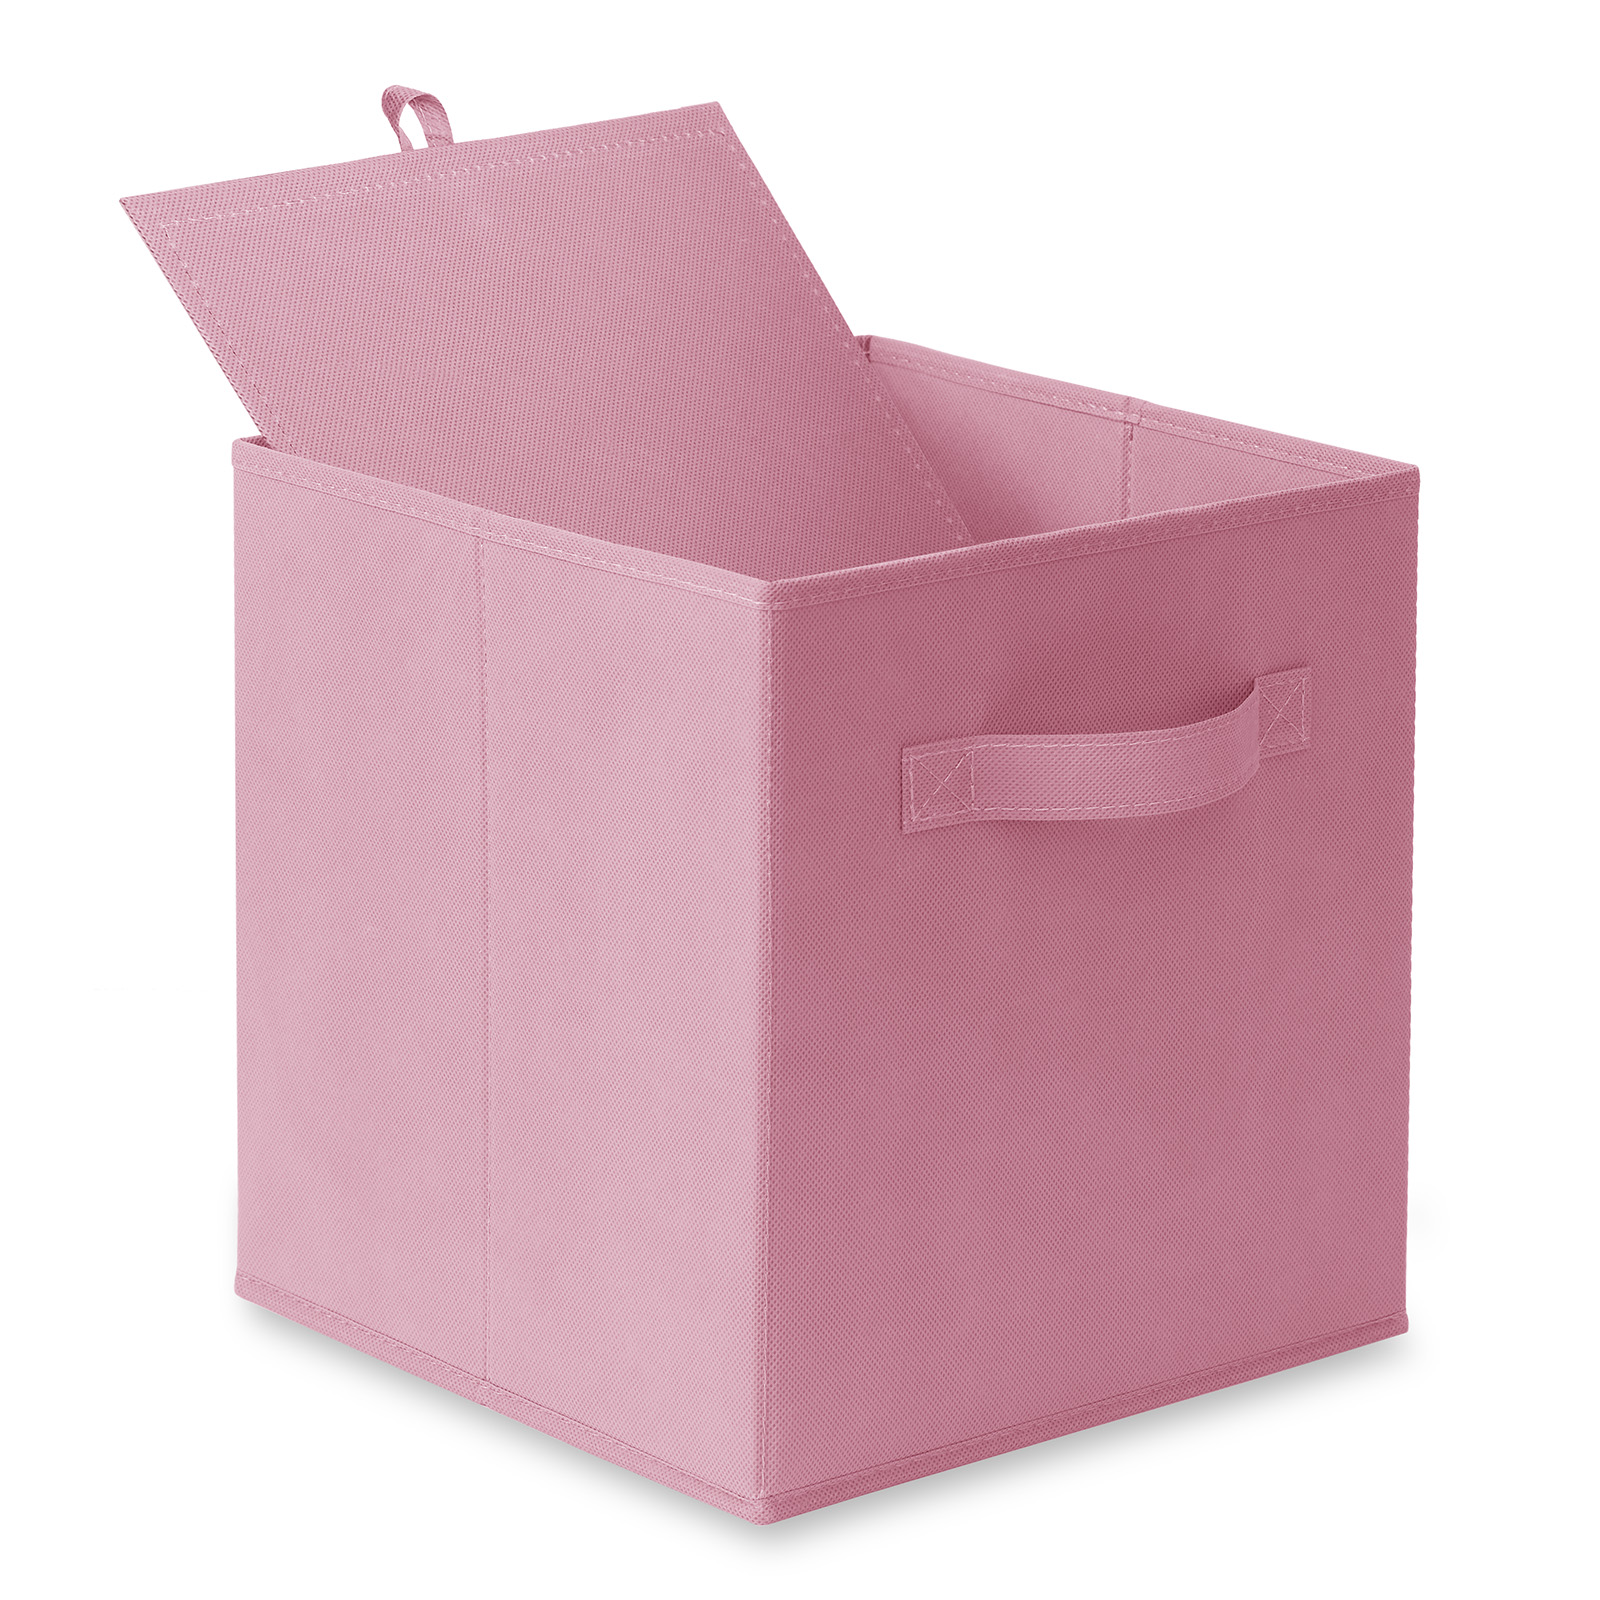 6-Collapsible-Foldable-Cloth-Fabric-Cubby-Cube-Storage-Bins-Baskets-for-Shelves thumbnail 42